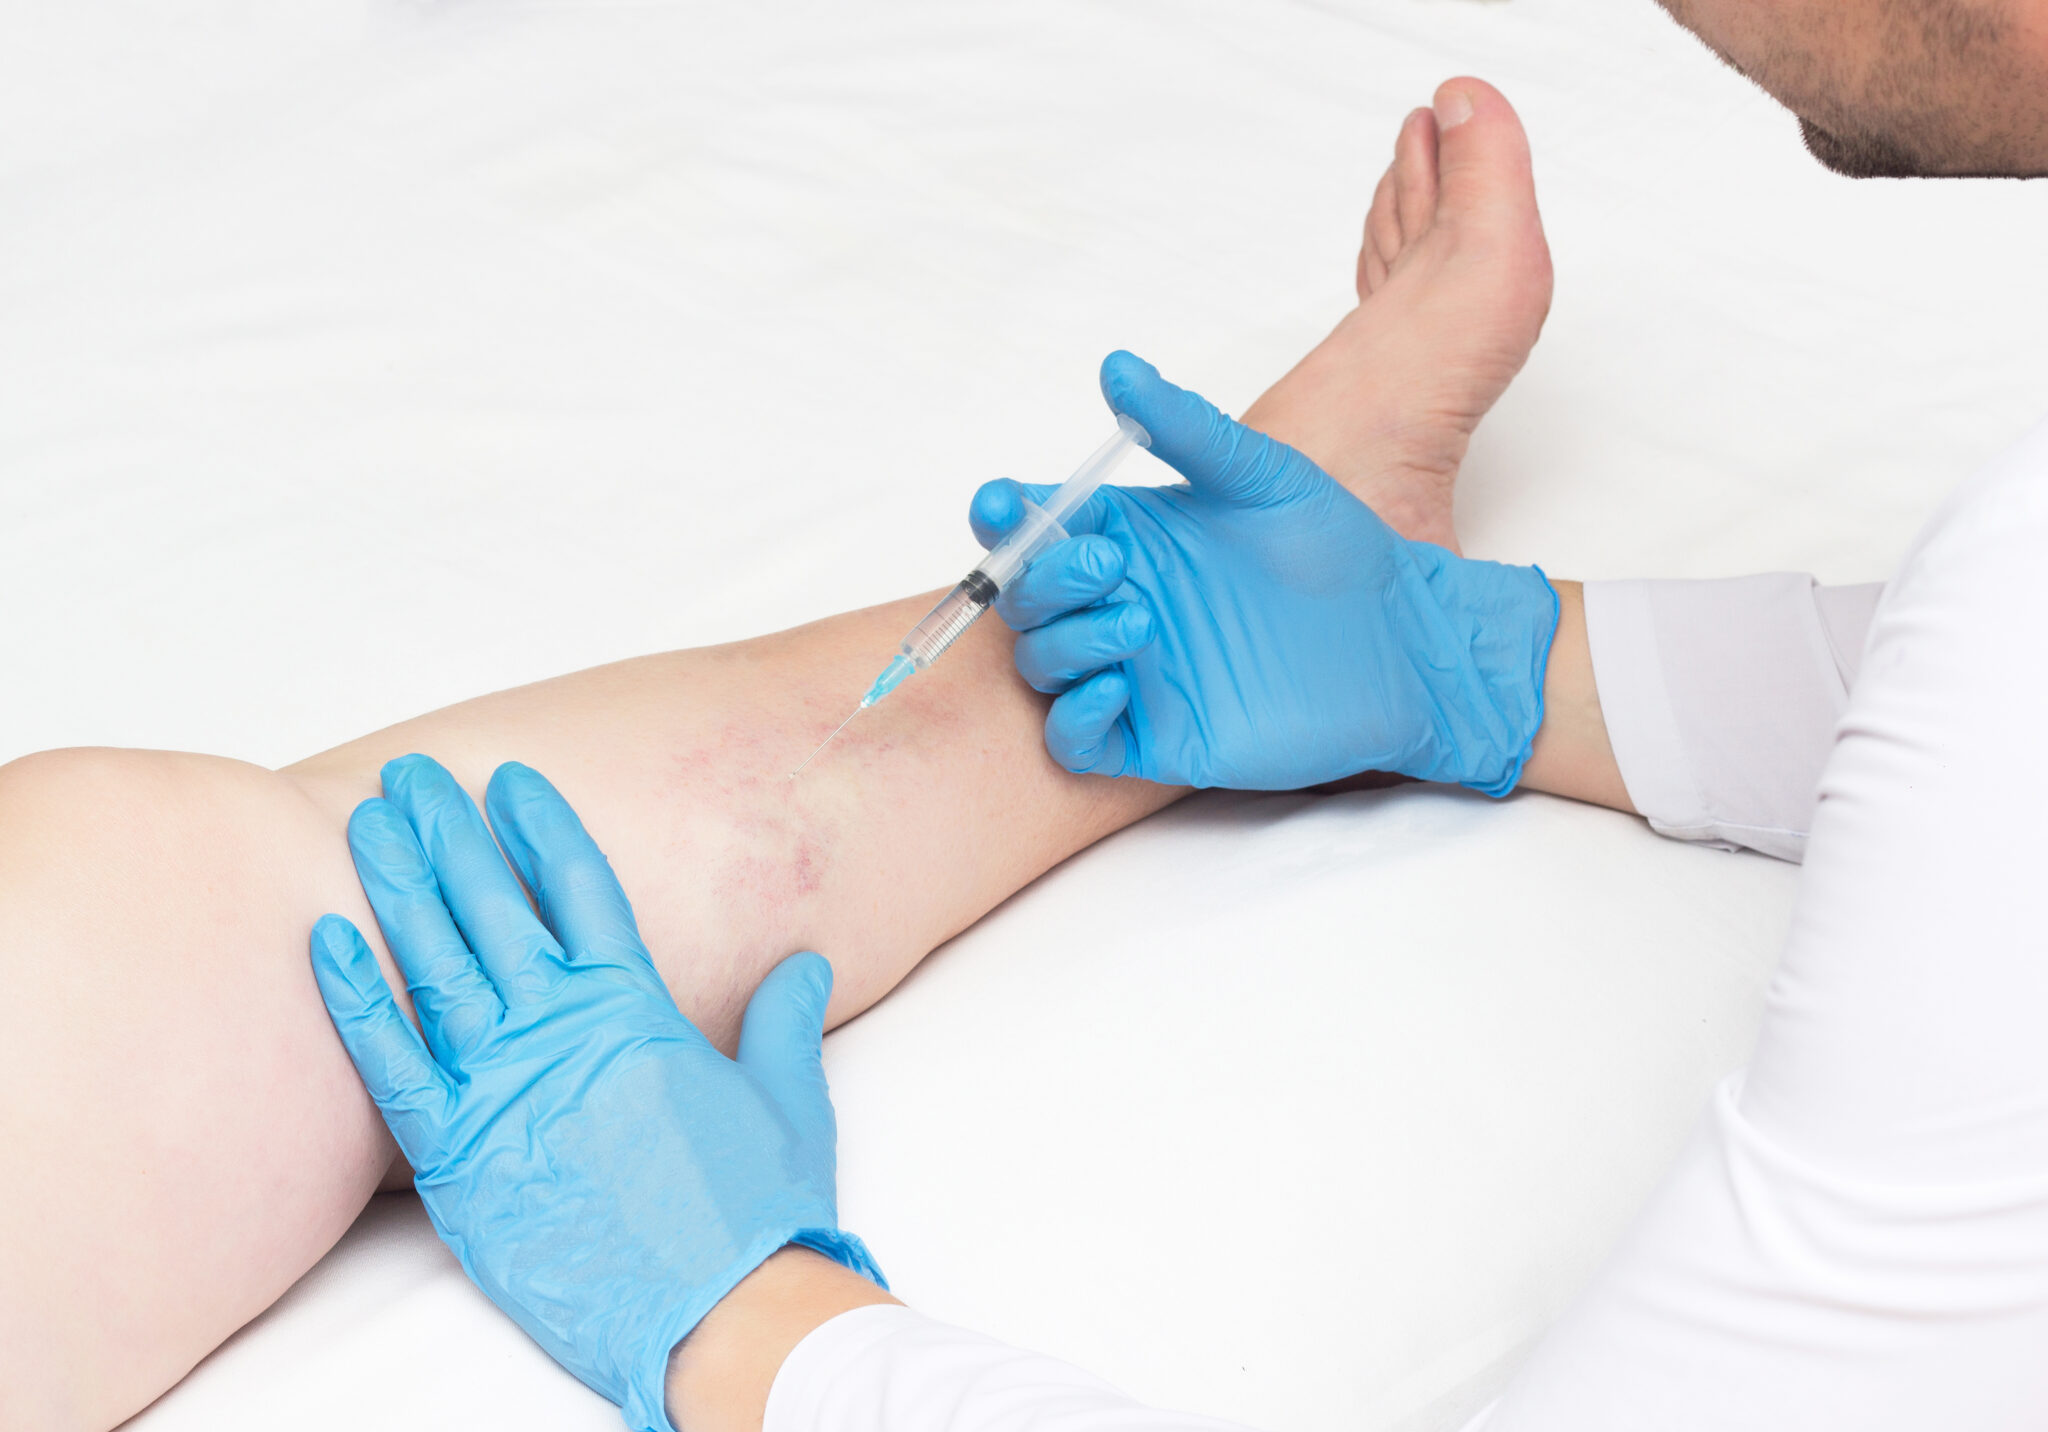 Are you looking for a vein center in TX? If so, you must ask some important questions to determine if it's a suitable vein center for your needs. This article helps you find the right vein center in TX.